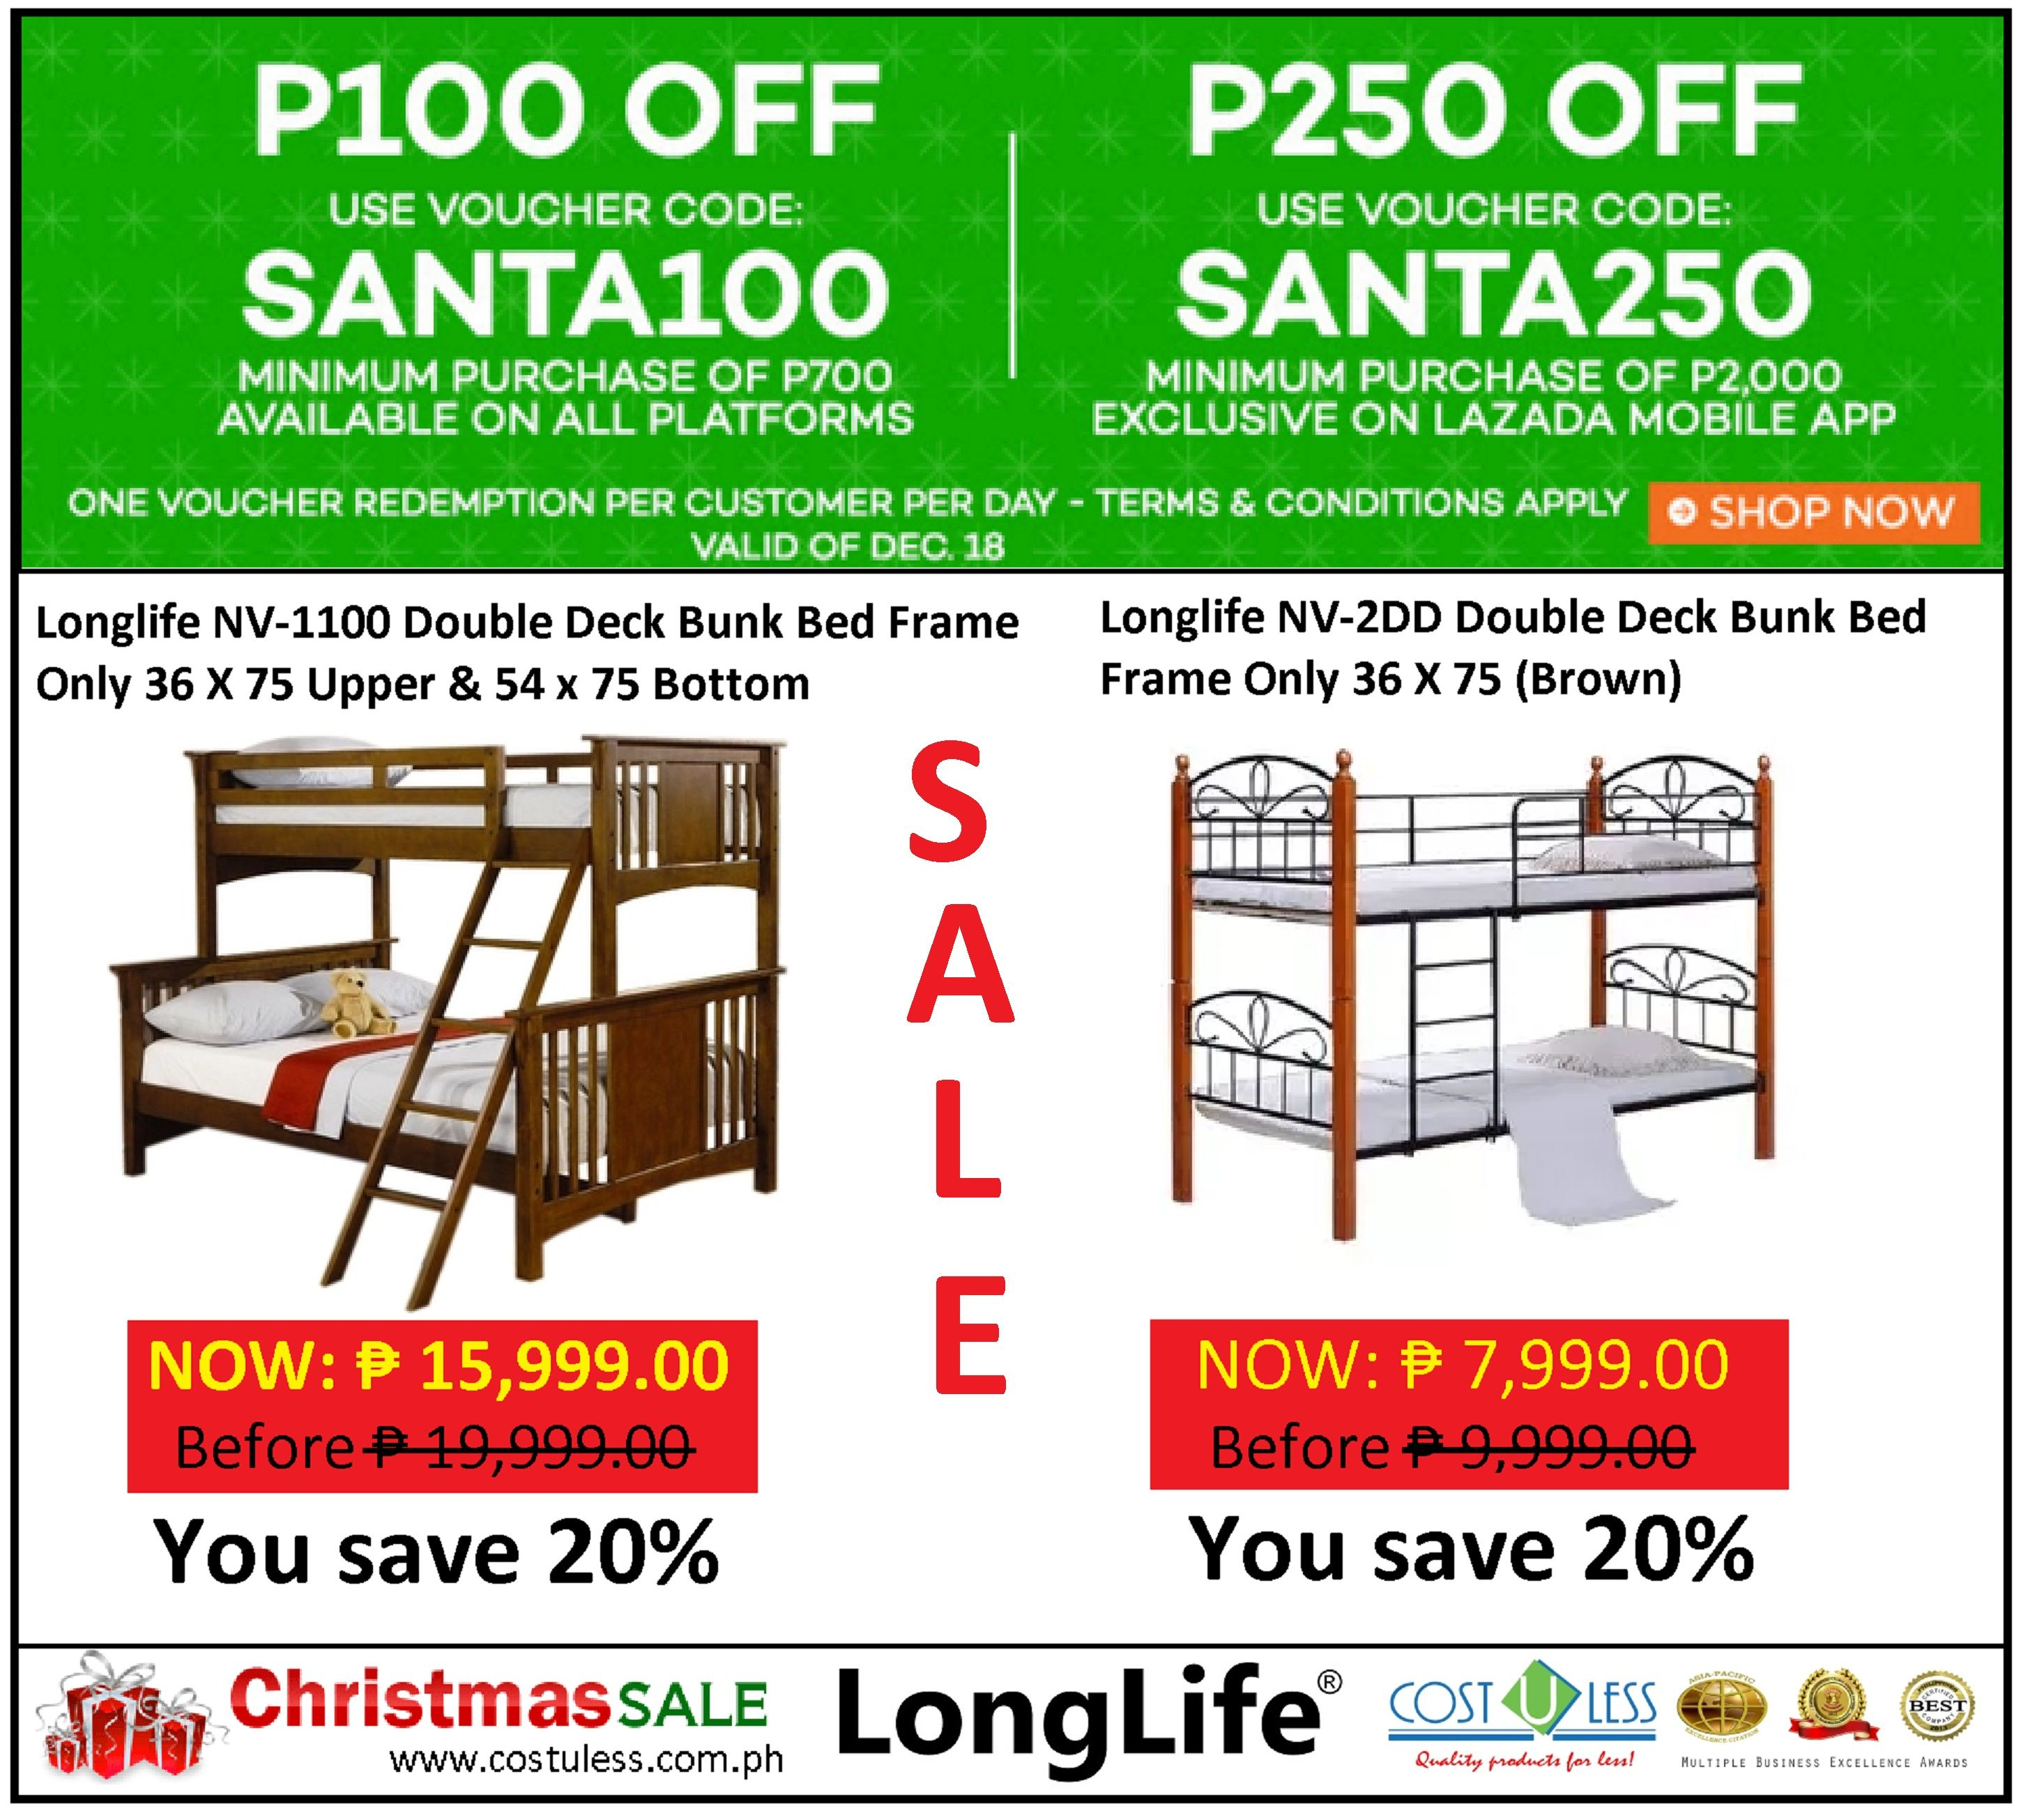 Bedroom Furniture Sale Lazada 39 S Santa 39 S Gift Shop Promo Save P100 Up To P250 Off Discount On